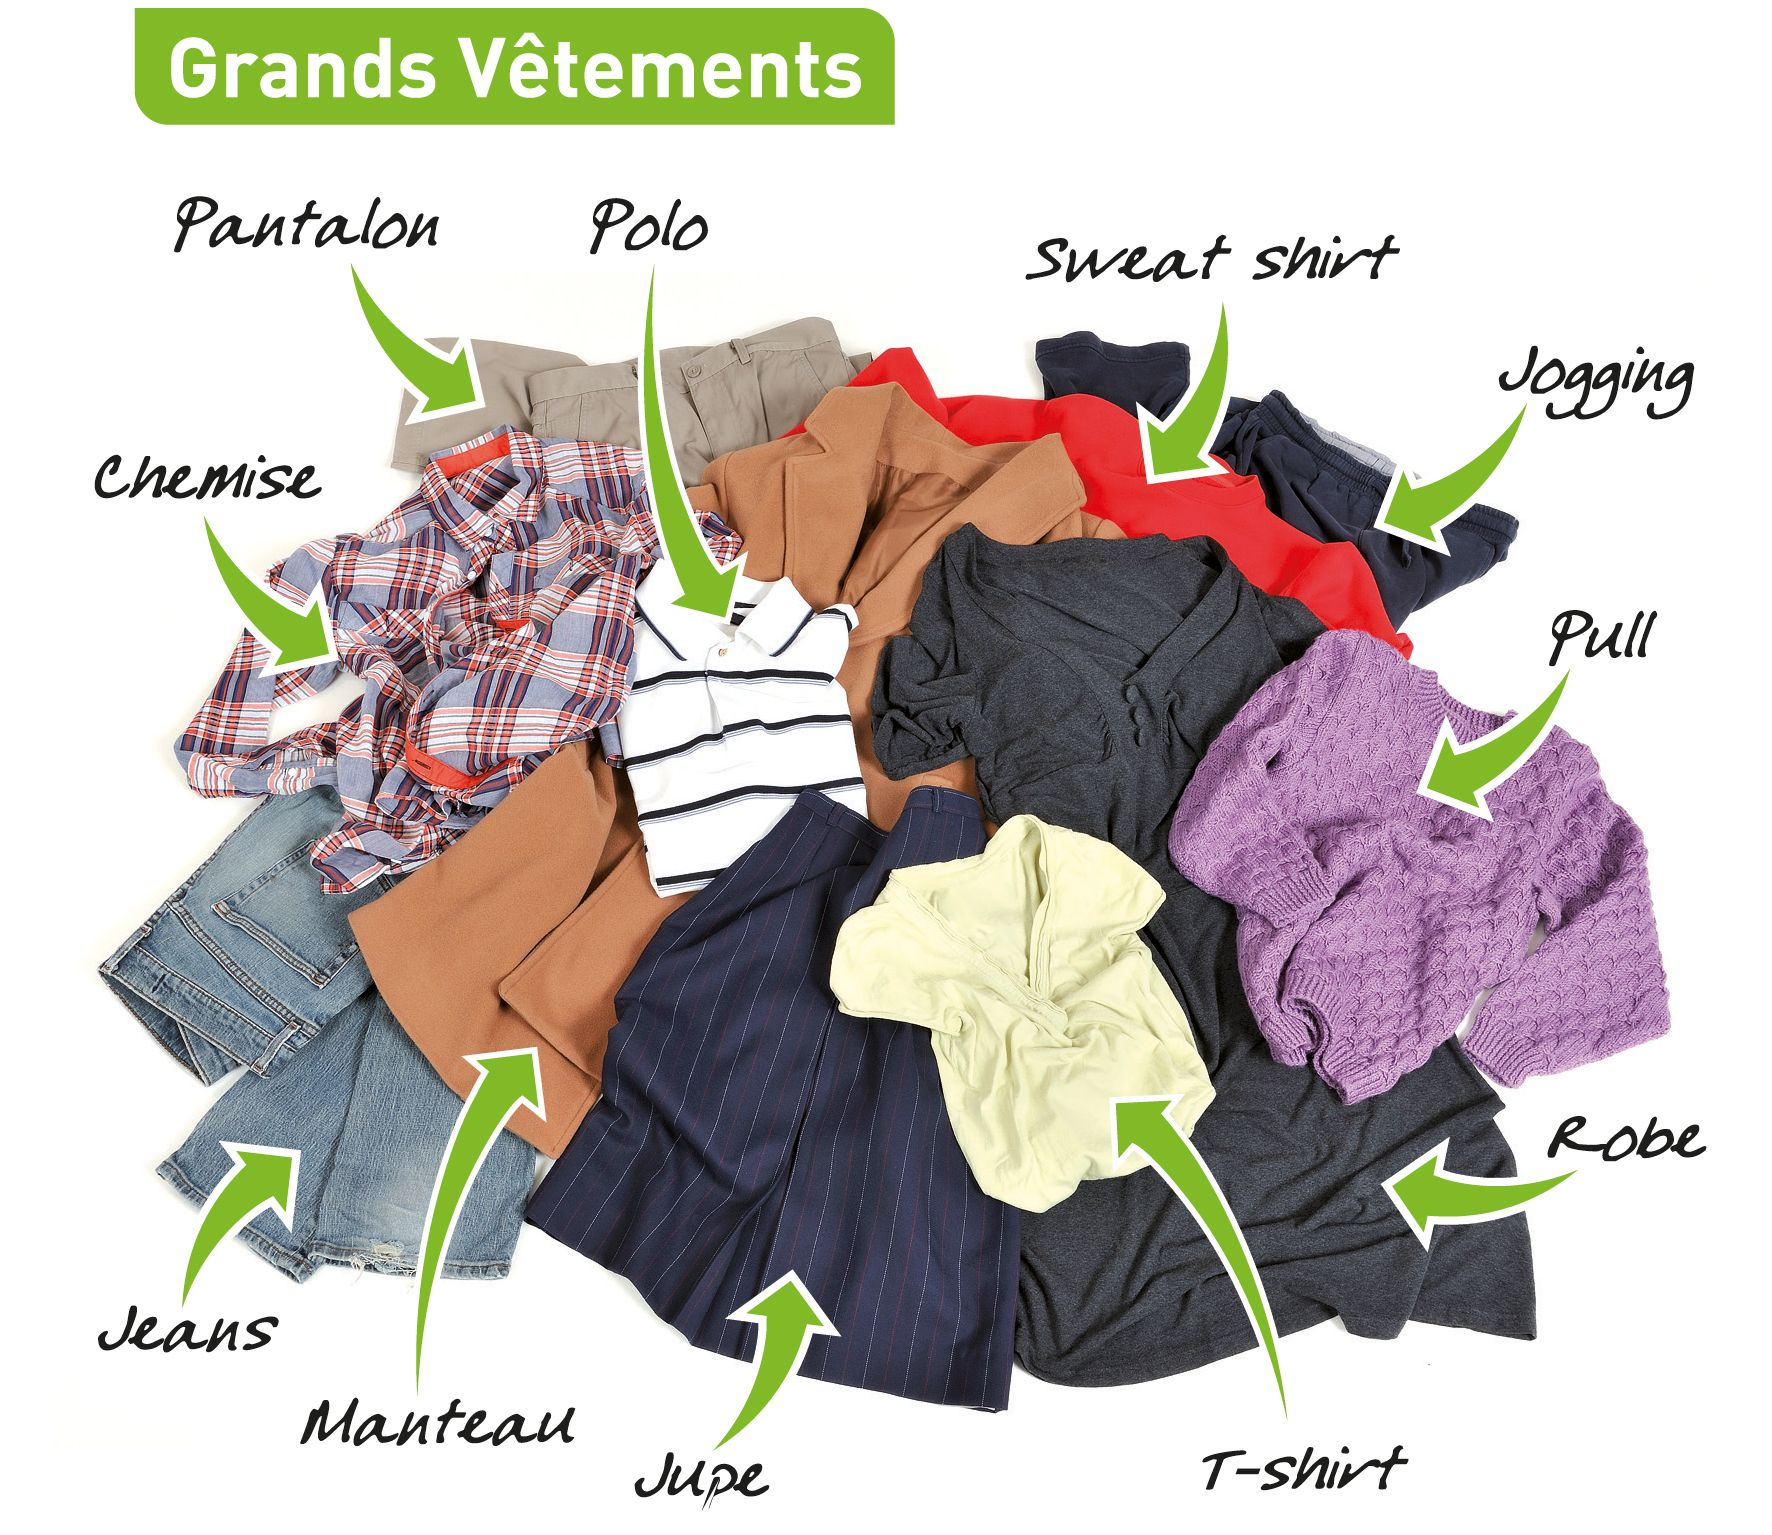 Grands vetements.jpg